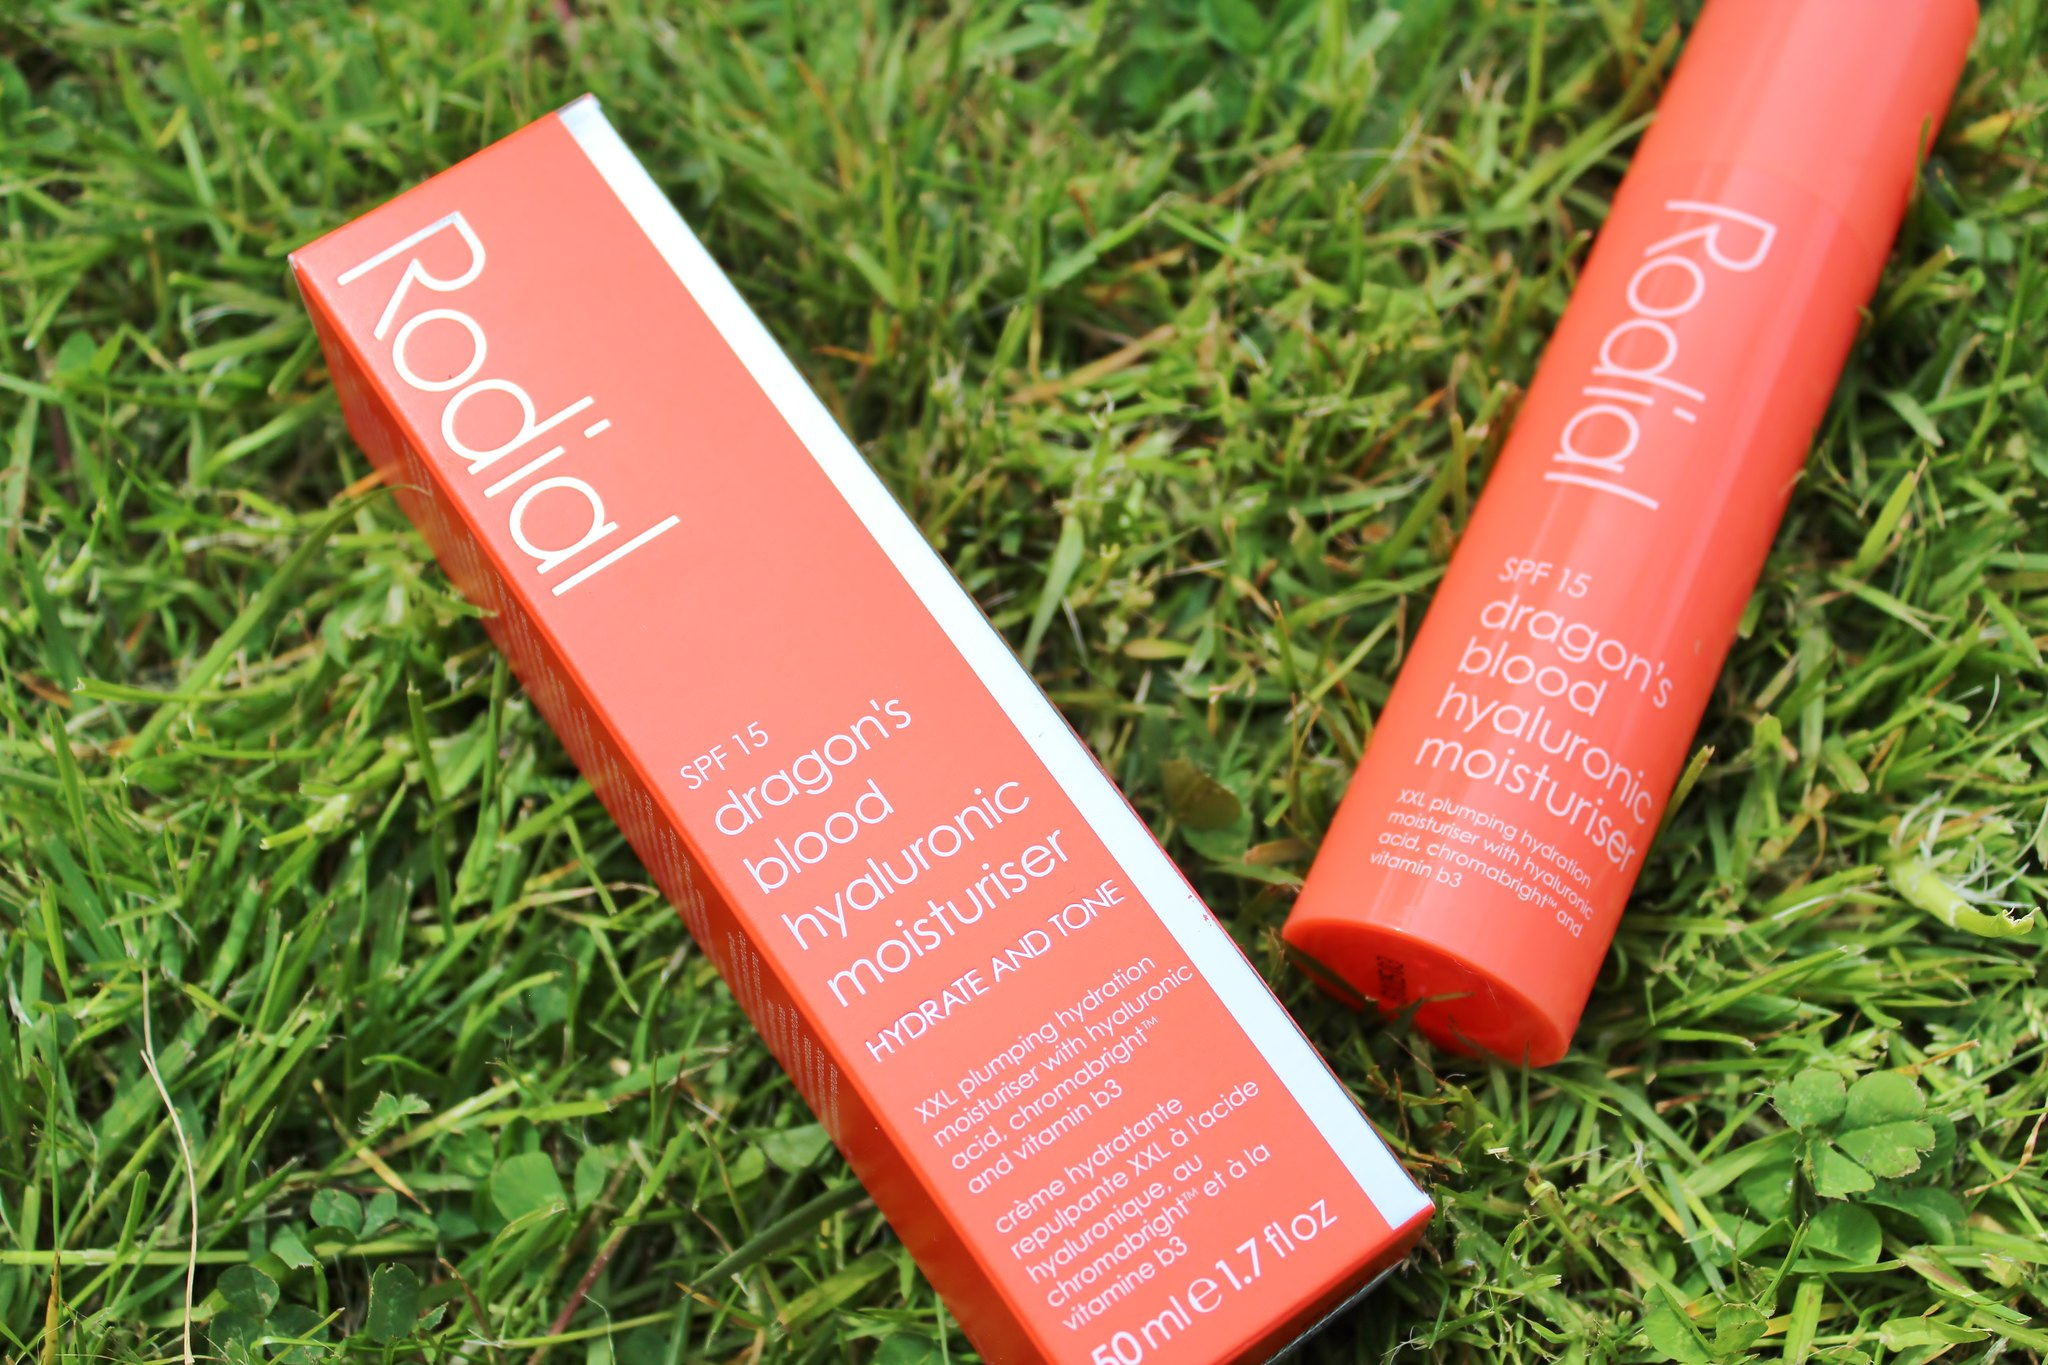 RODIAL DRAGONS BLOOD HYALURONIC MOISTURISER